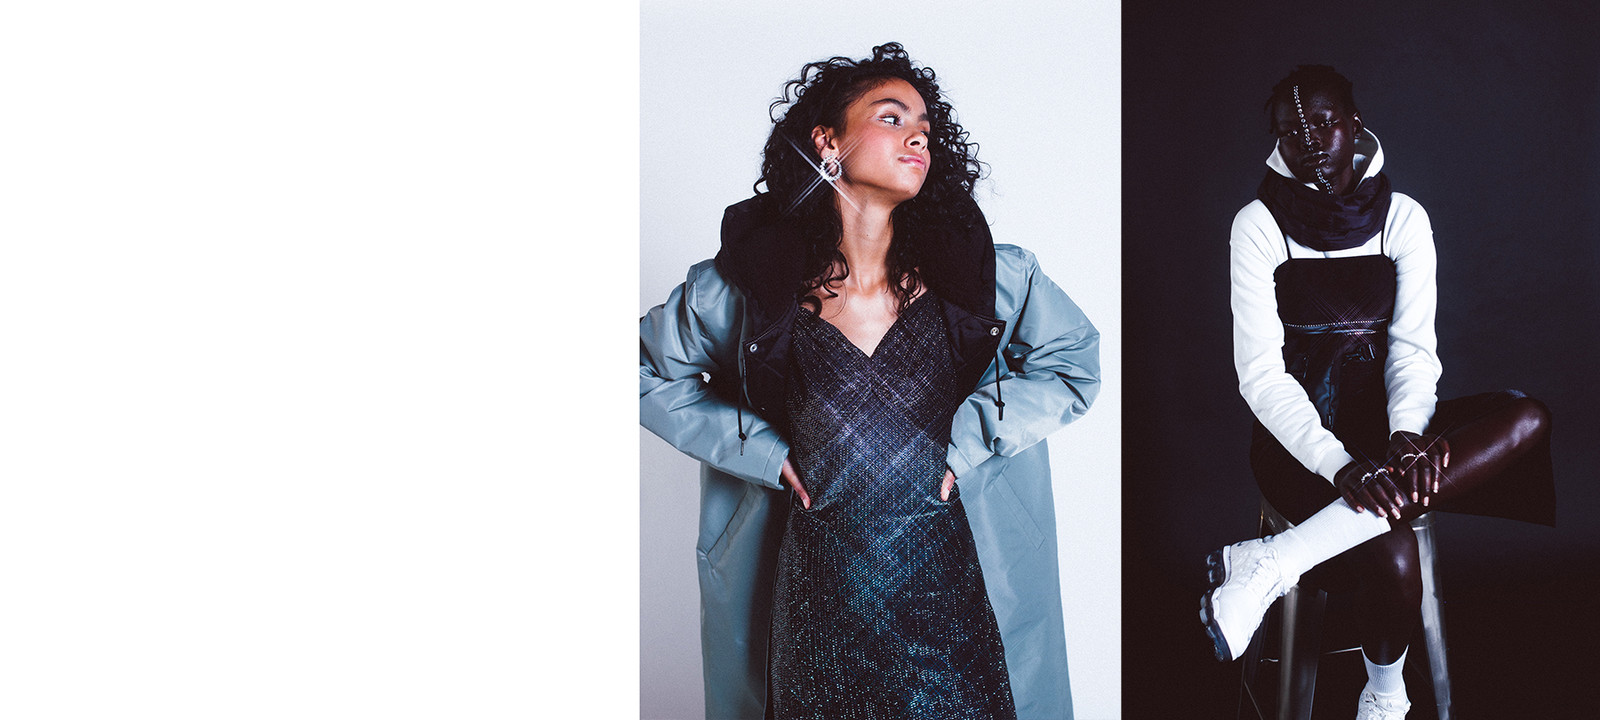 Stussy green coat black dress sandals mules heels AIYA Jewels earrings New Year's Eve Holiday Party Outfit Ideas Inspo Editorial Tianna Franks Maya Gatensby Family Management Vancouver